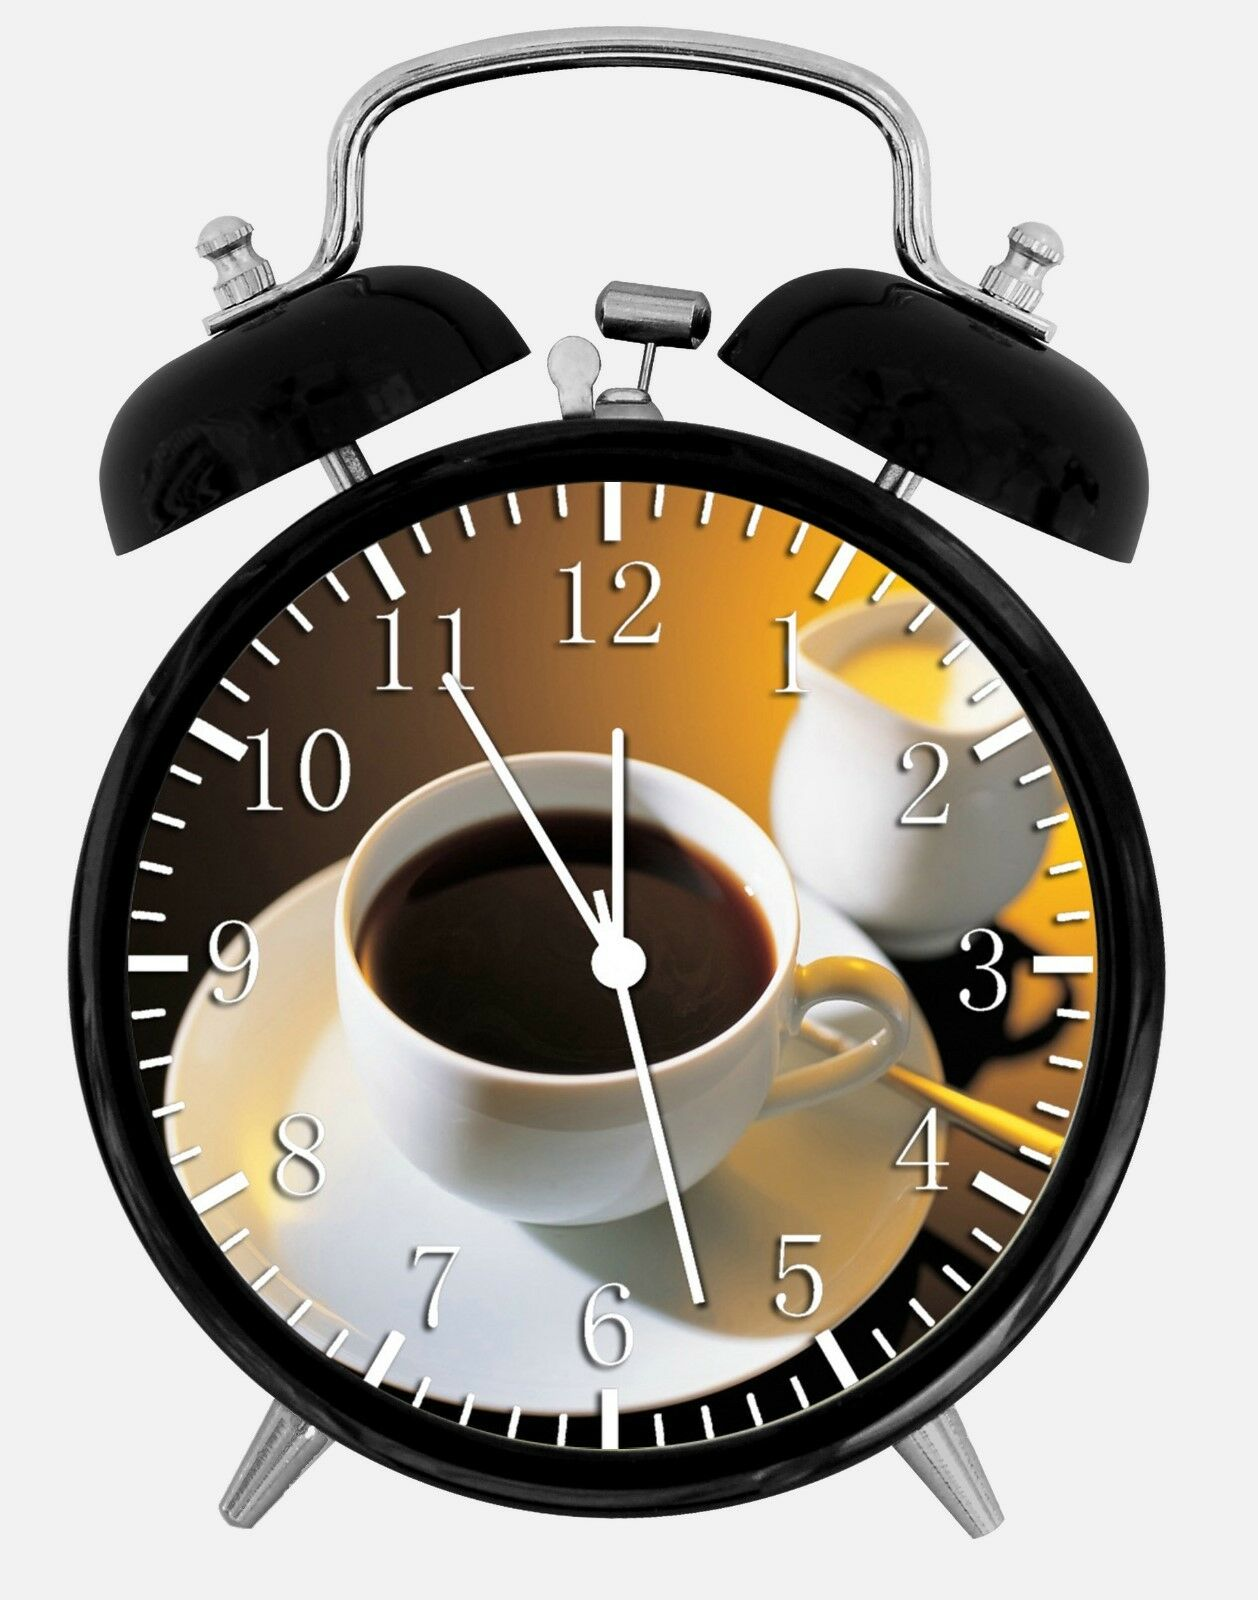 """Cup of Coffee Alarm Desk Clock 3.75"""" Home or Office Decor Y40 Nice For Gift"""